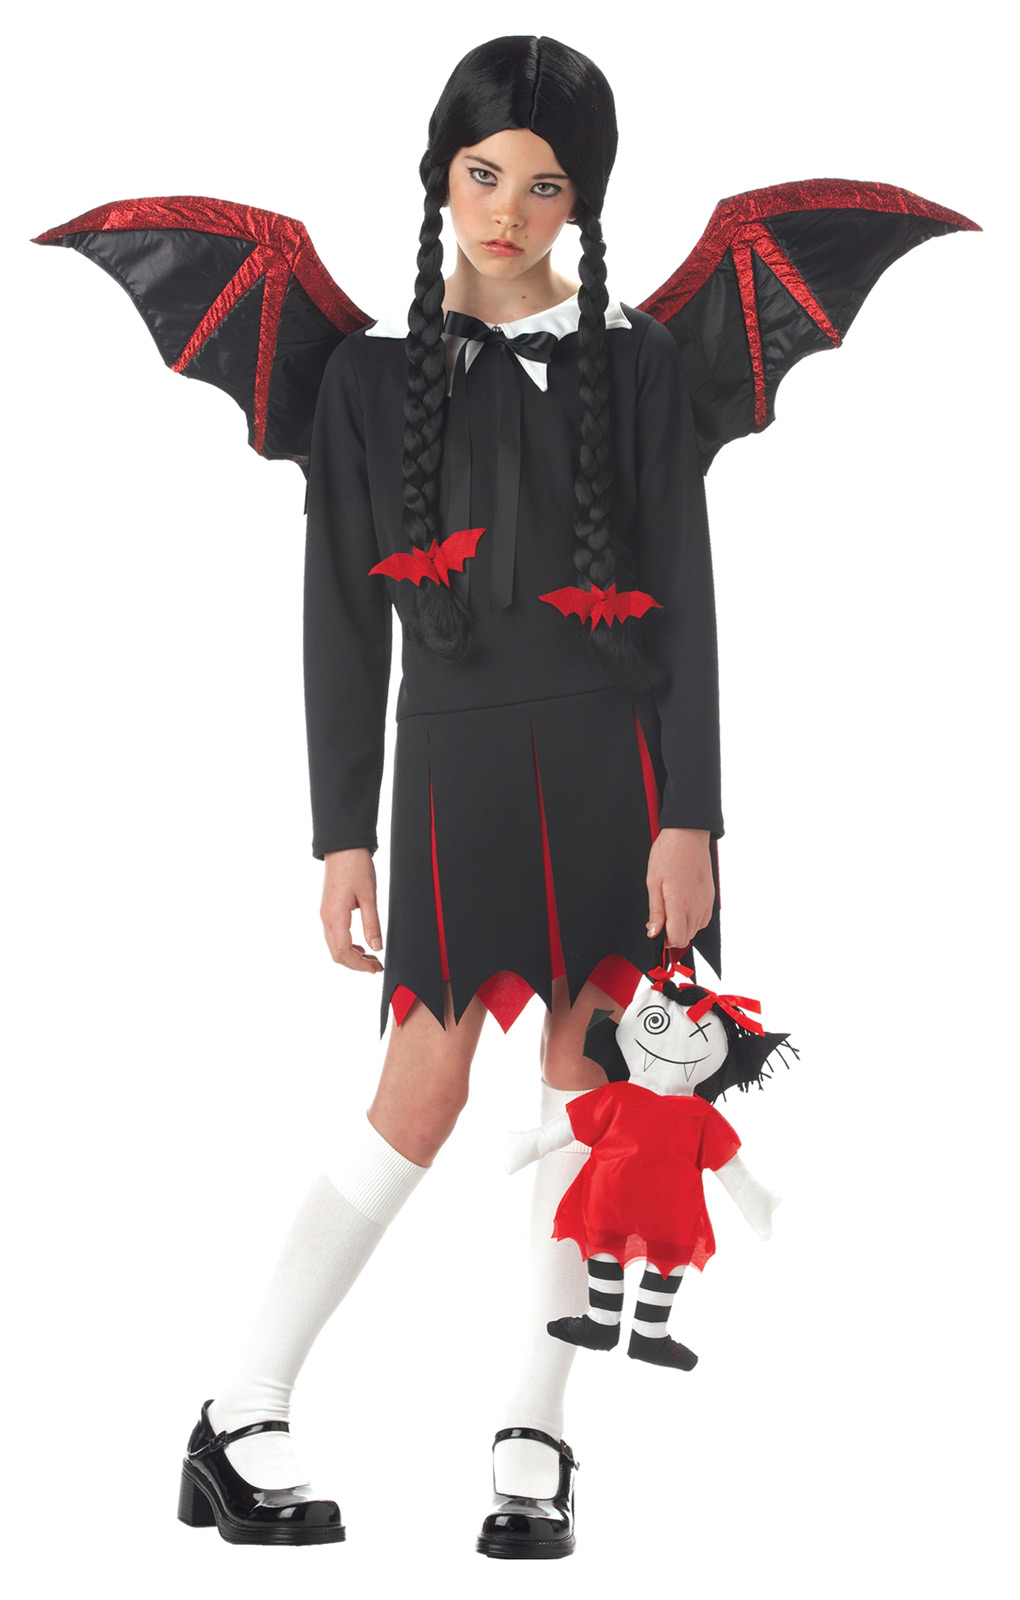 Very Bat Girl childs costume - Mayhem Mansion line ** Clearance Sale on Teen/Kids Costumes was $28.95 ***  sc 1 st  House of Aberrant & Very Bat Girl Costume | House of Aberrant